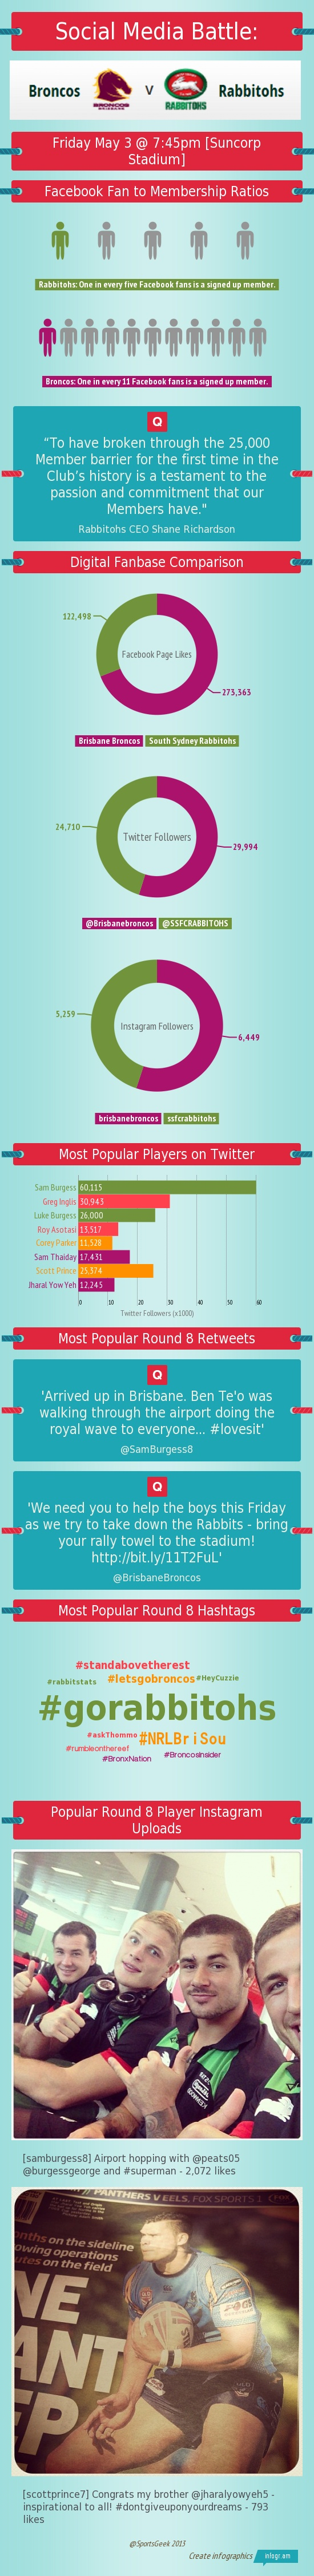 Infographic breakdown of social media stats between the South Sydney Rabbitohs and Brisbane Broncos. Congrats on reaching 25,000 @Kim Schulz Sydney Rabbitohs members!